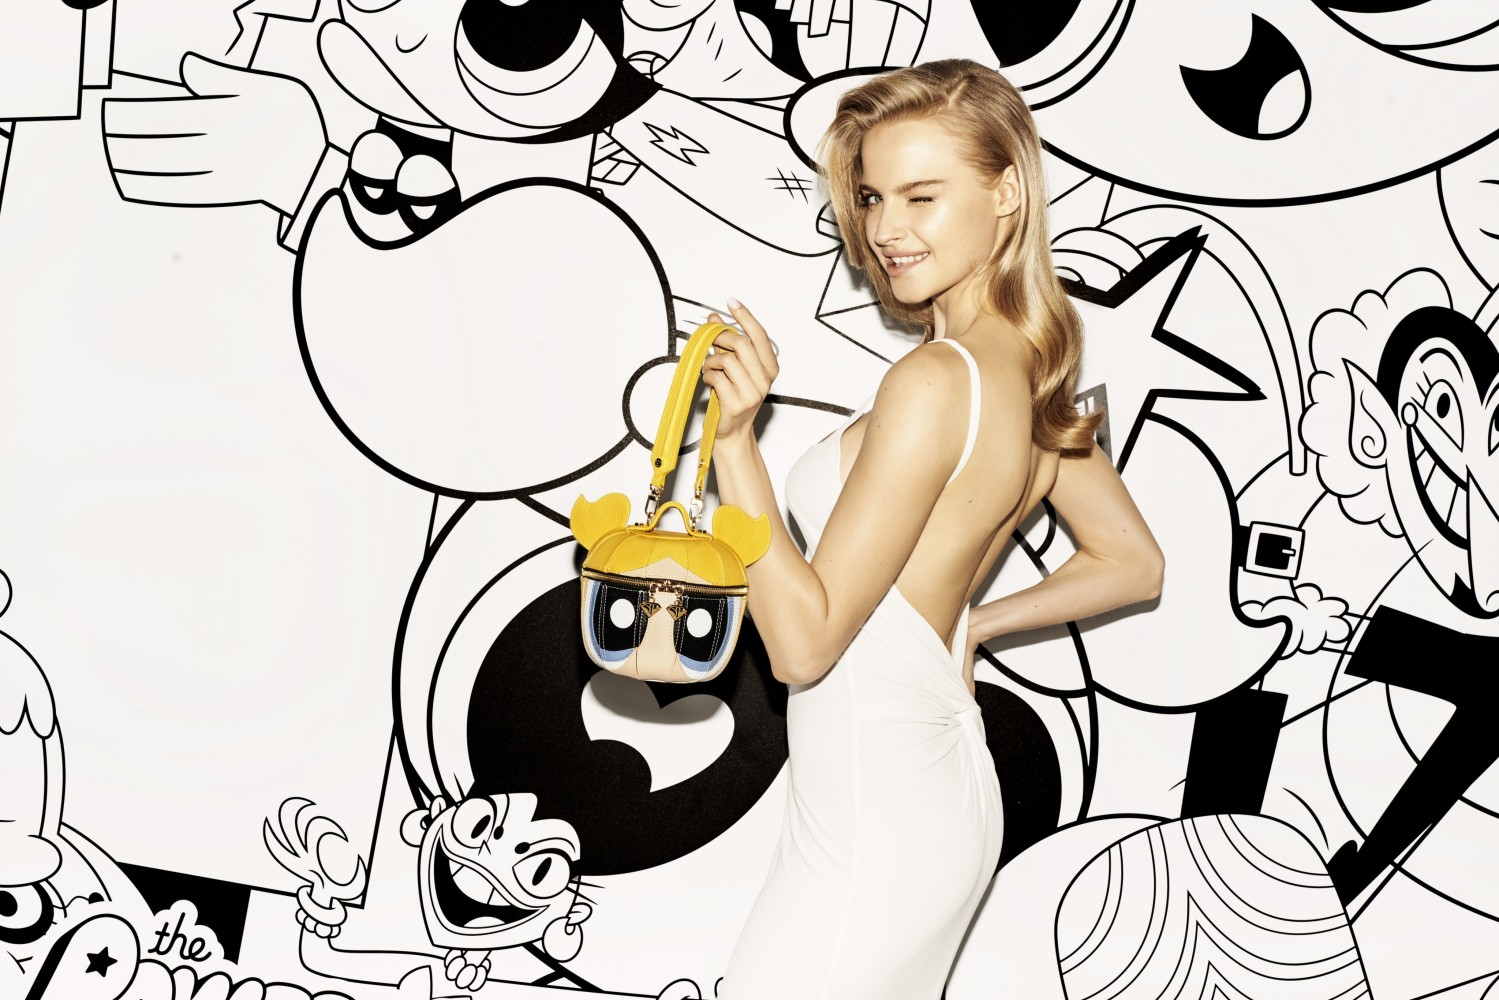 KAROLINA PISAREK FOR SABRINA PILEWICZ X THE POWER PUFF GIRLS